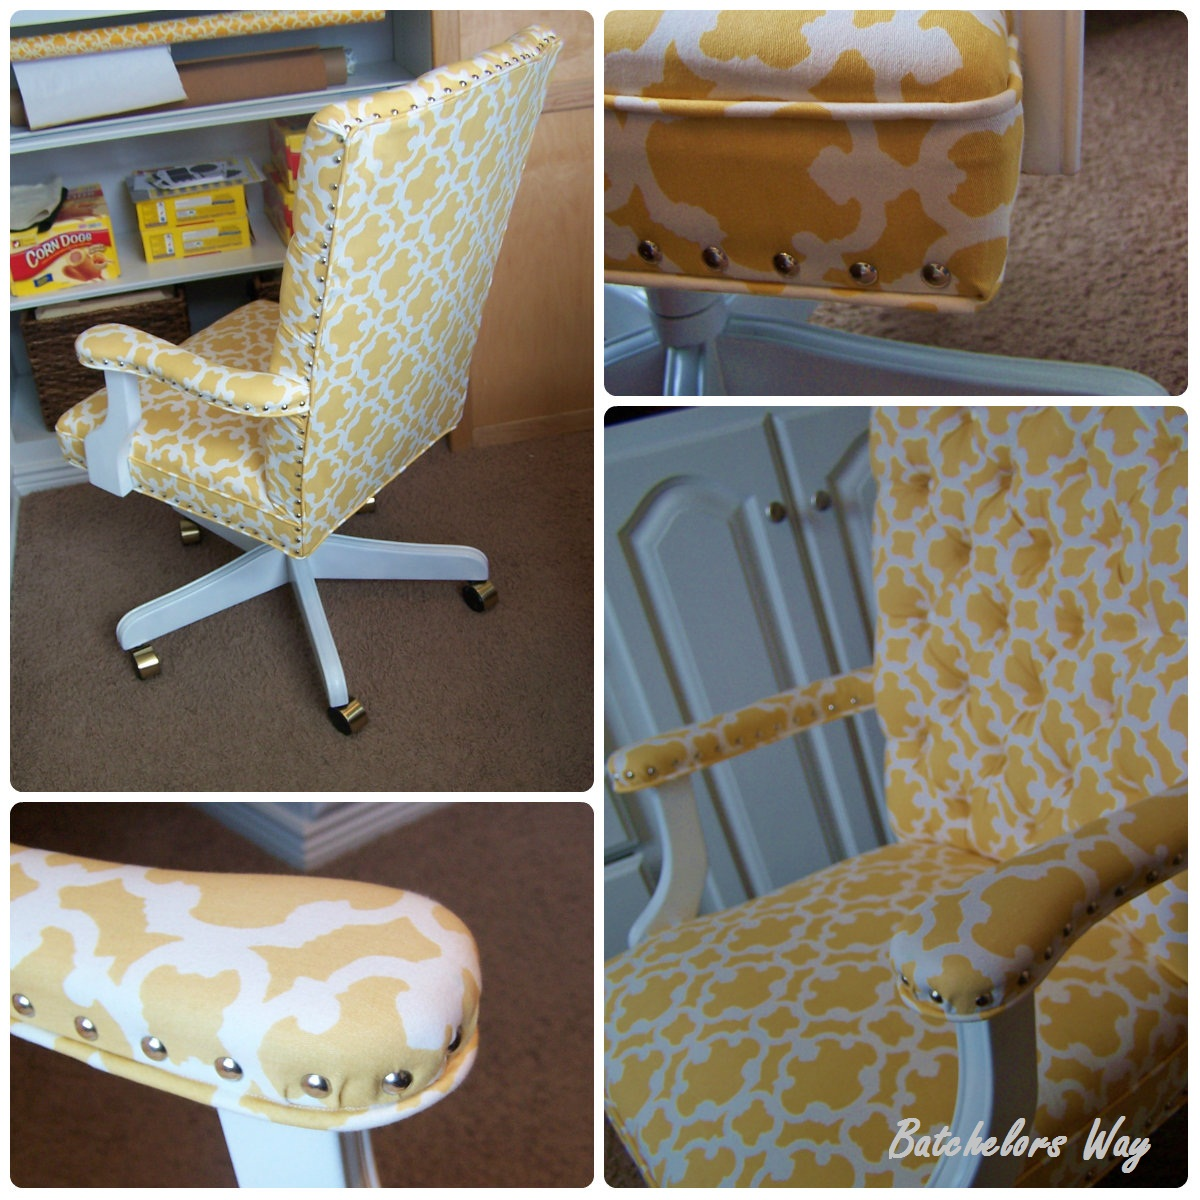 how to diy reupholster a chair pride chairs parts batchelors way office redo